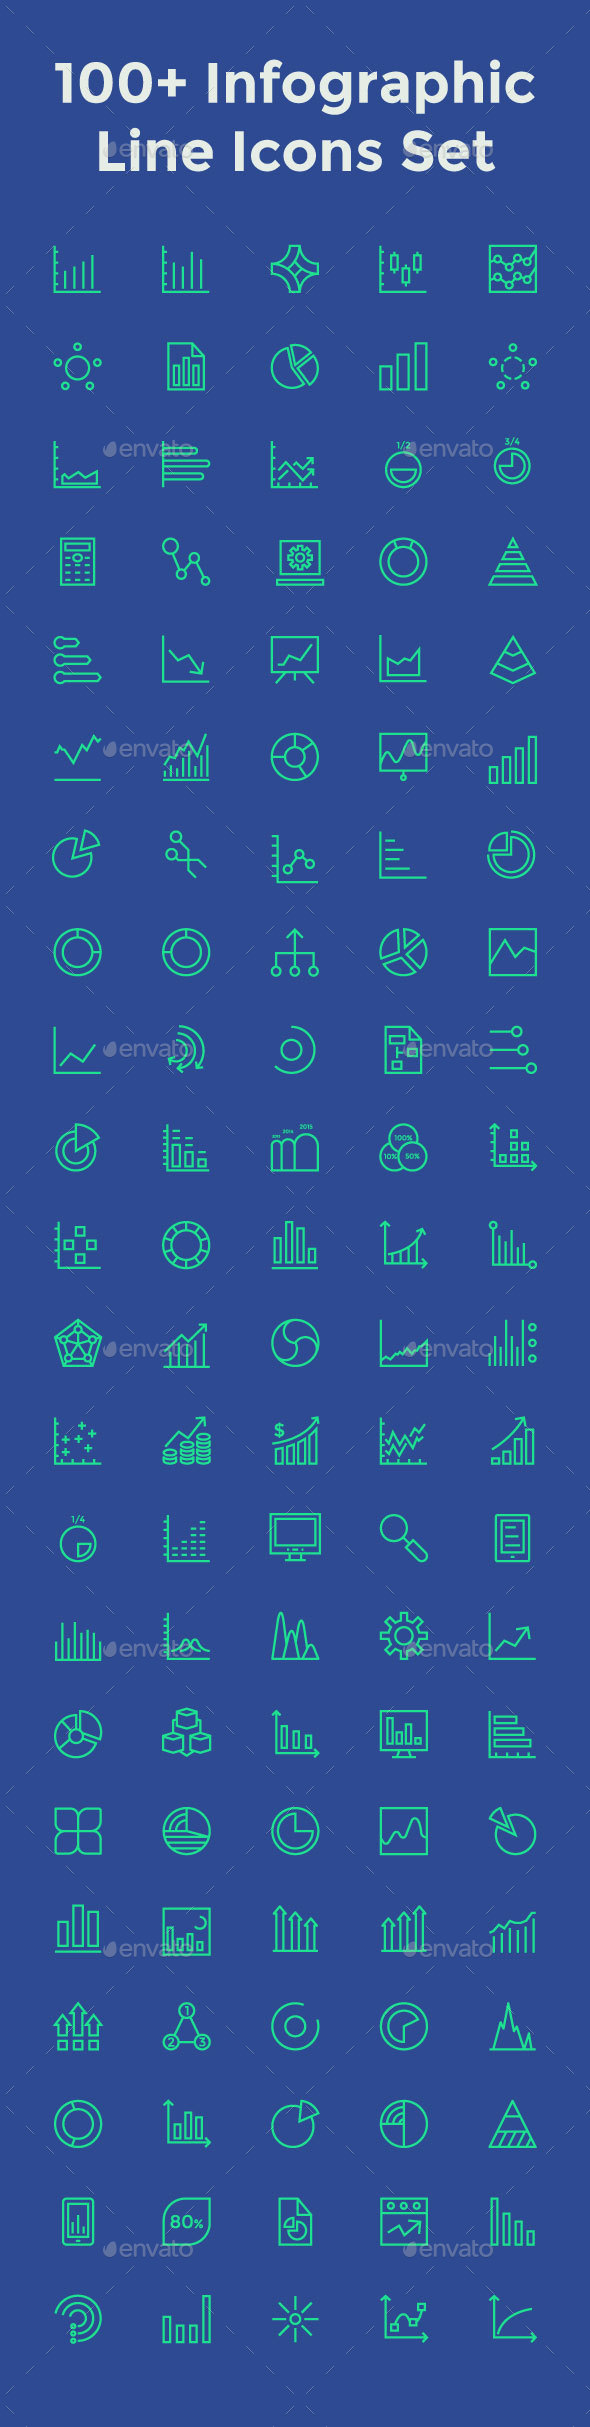 100+ Infographic Line Icons Set - Icons